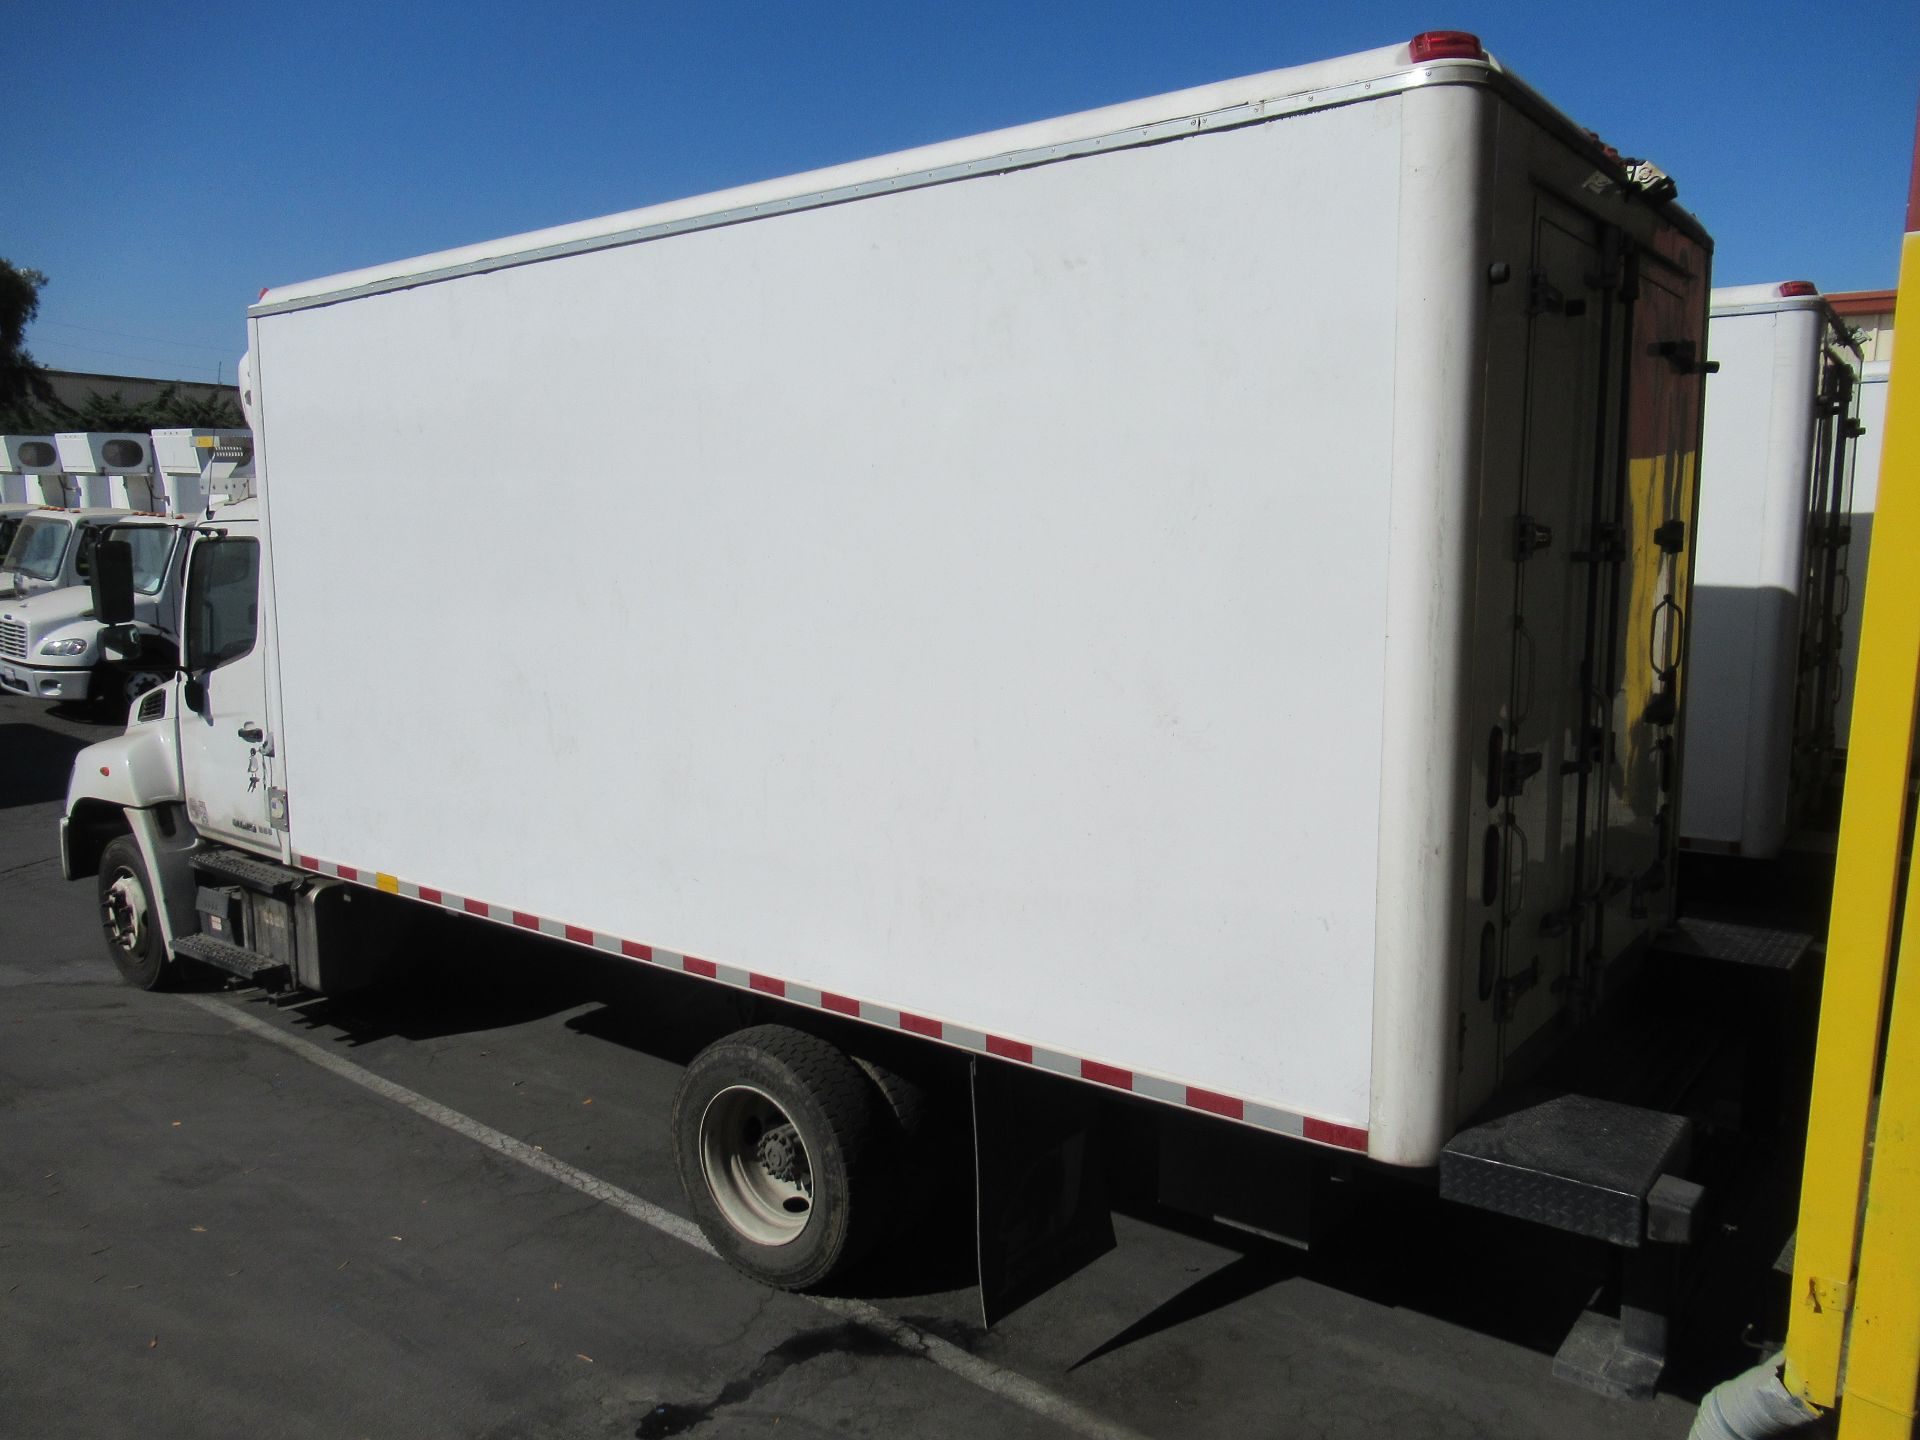 2018 Hino refrigerated truck - Image 4 of 9